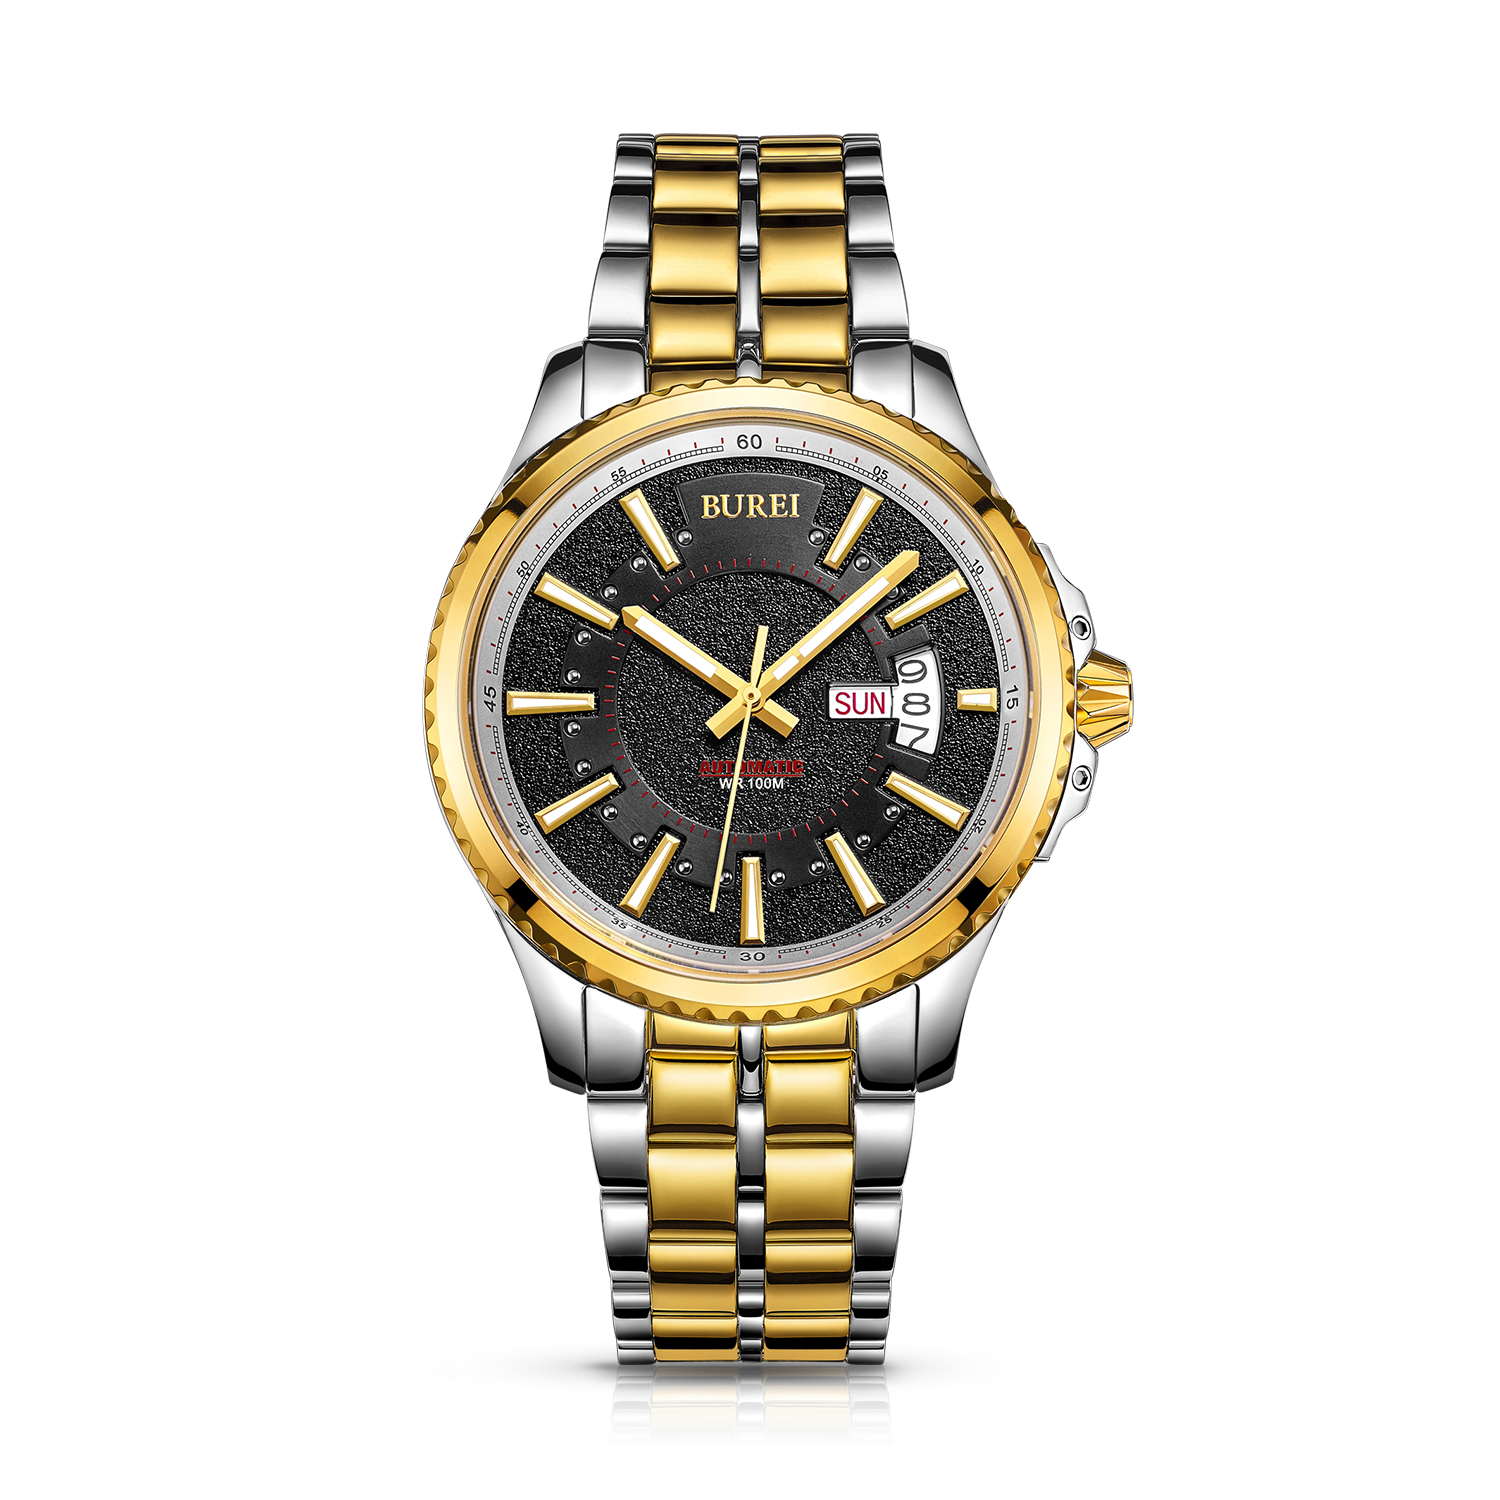 BUREI 15010 Switzerland watches men luxury brand Men's Day and Date Automatic Watch with Gold Dial Stainless Steel Band